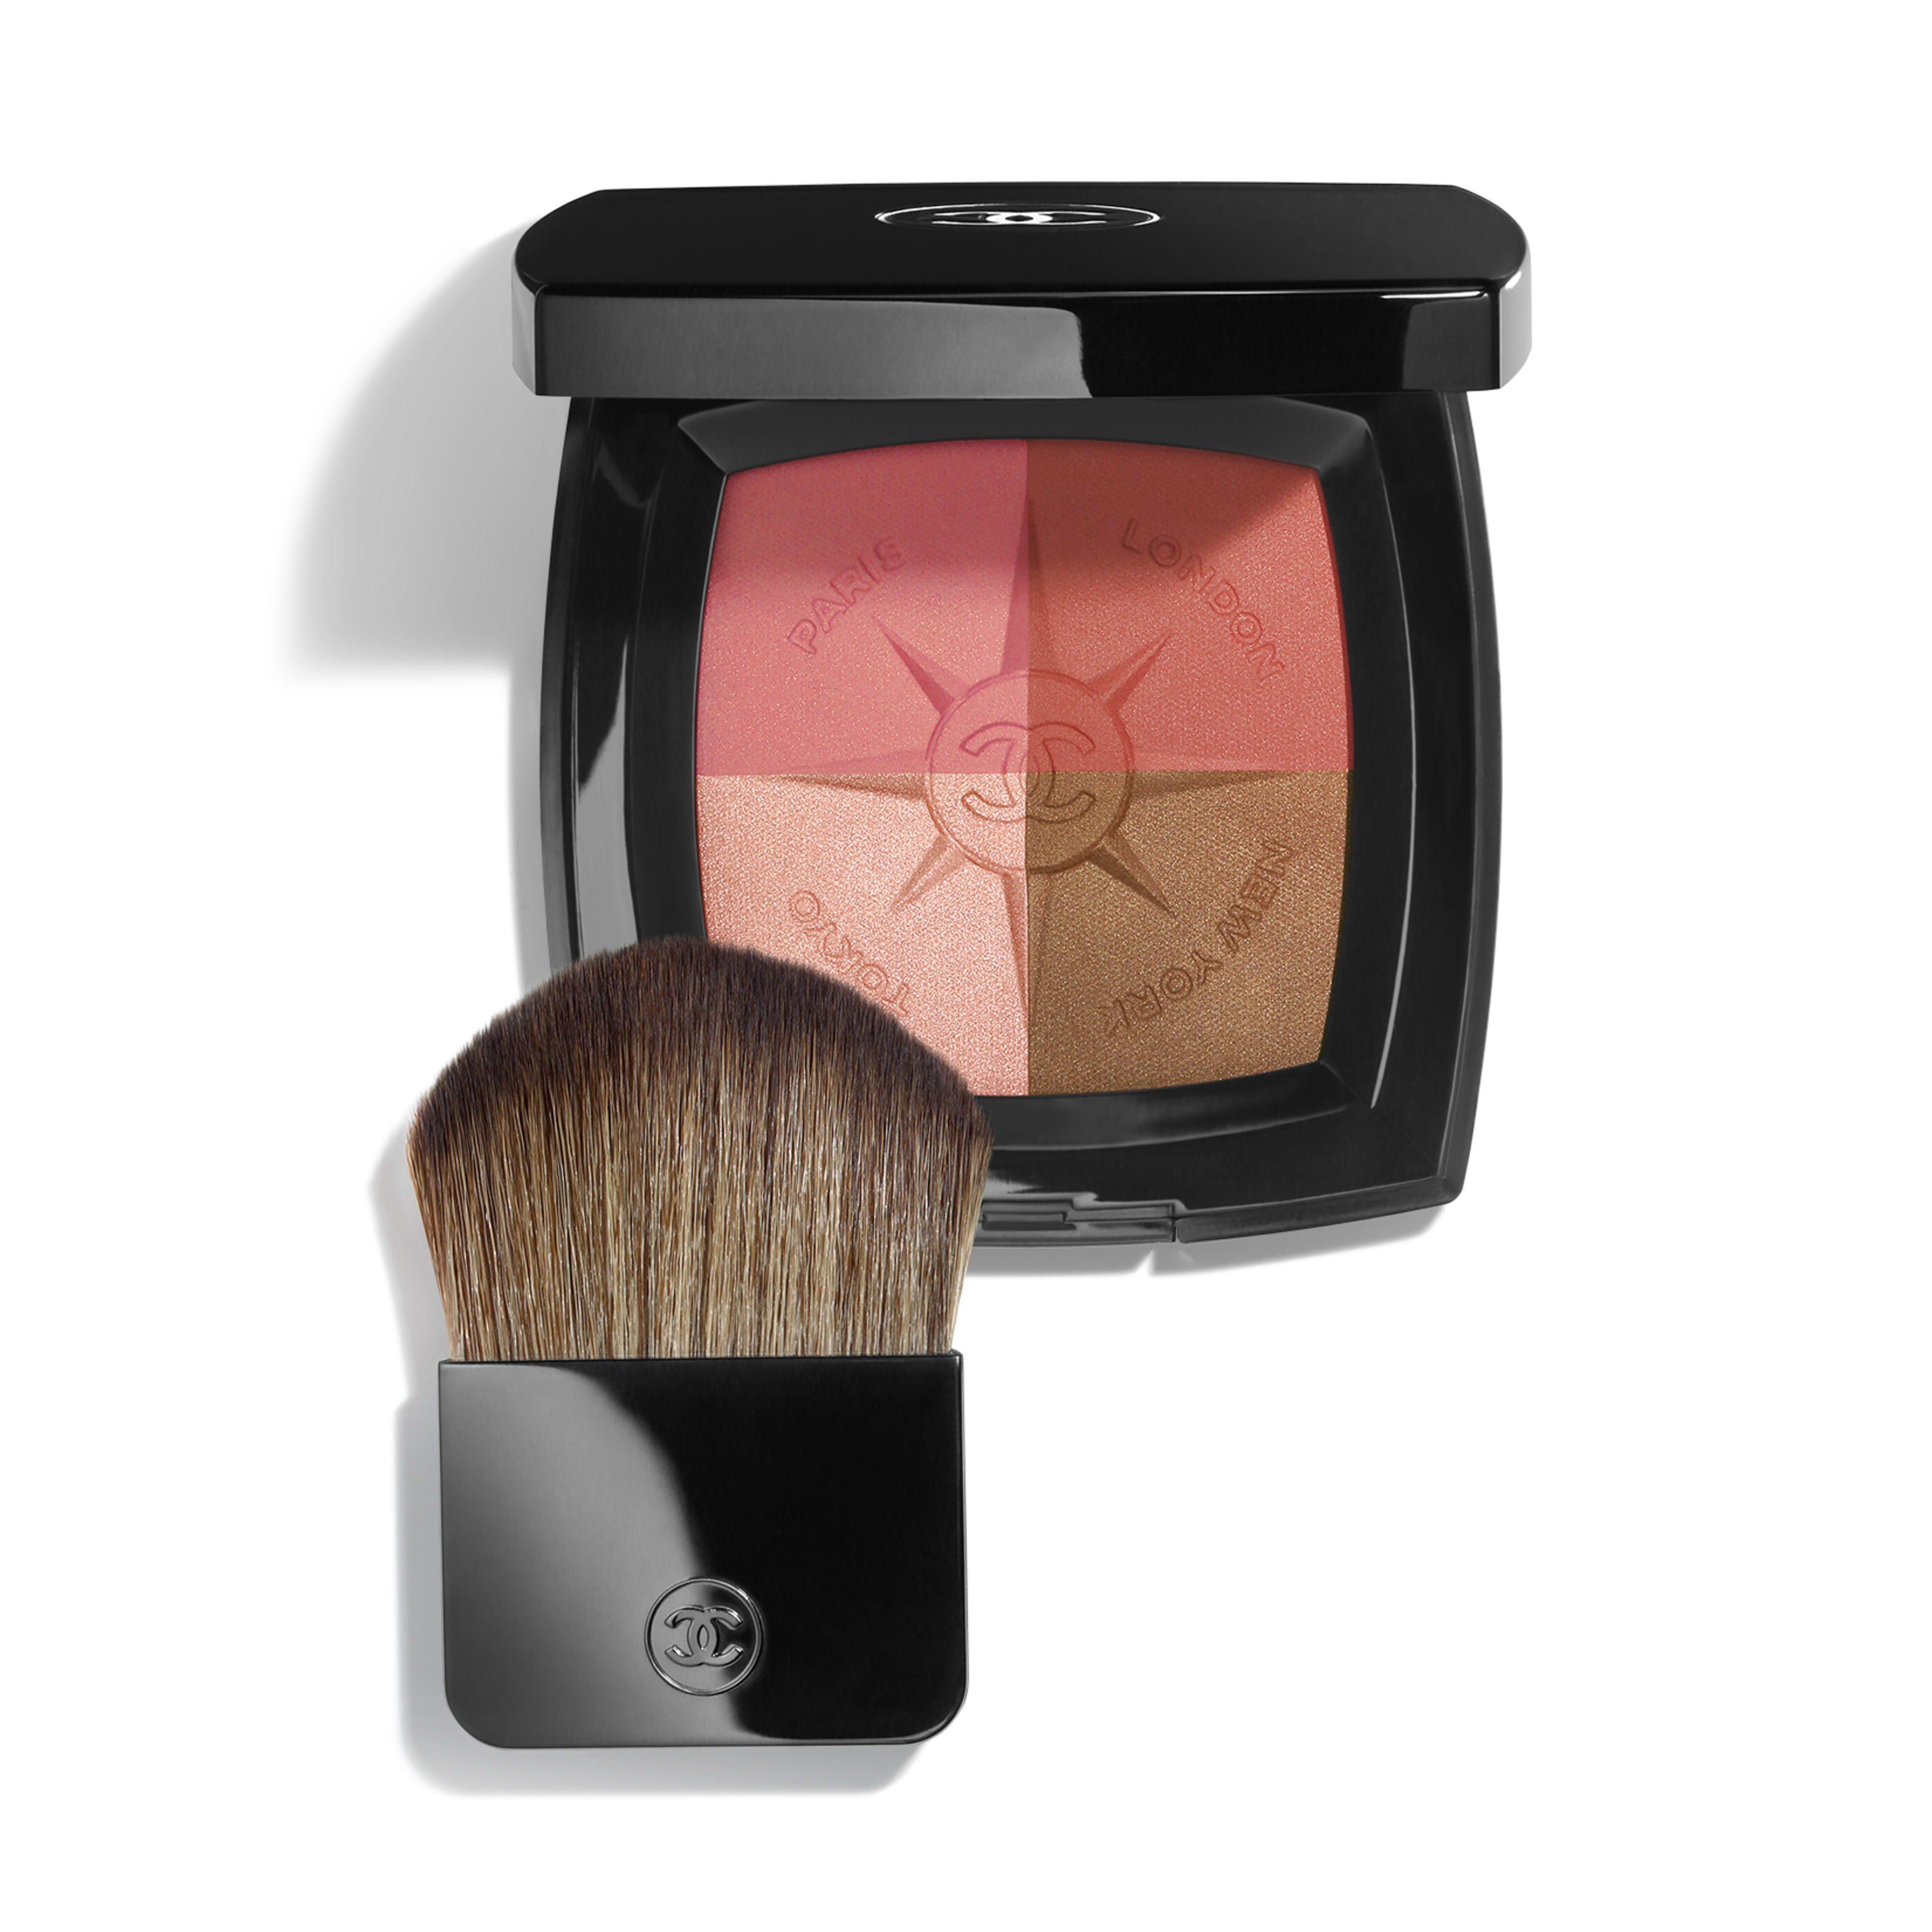 VOYAGE DE CHANEL - makeup - 0.38OZ. - Default view